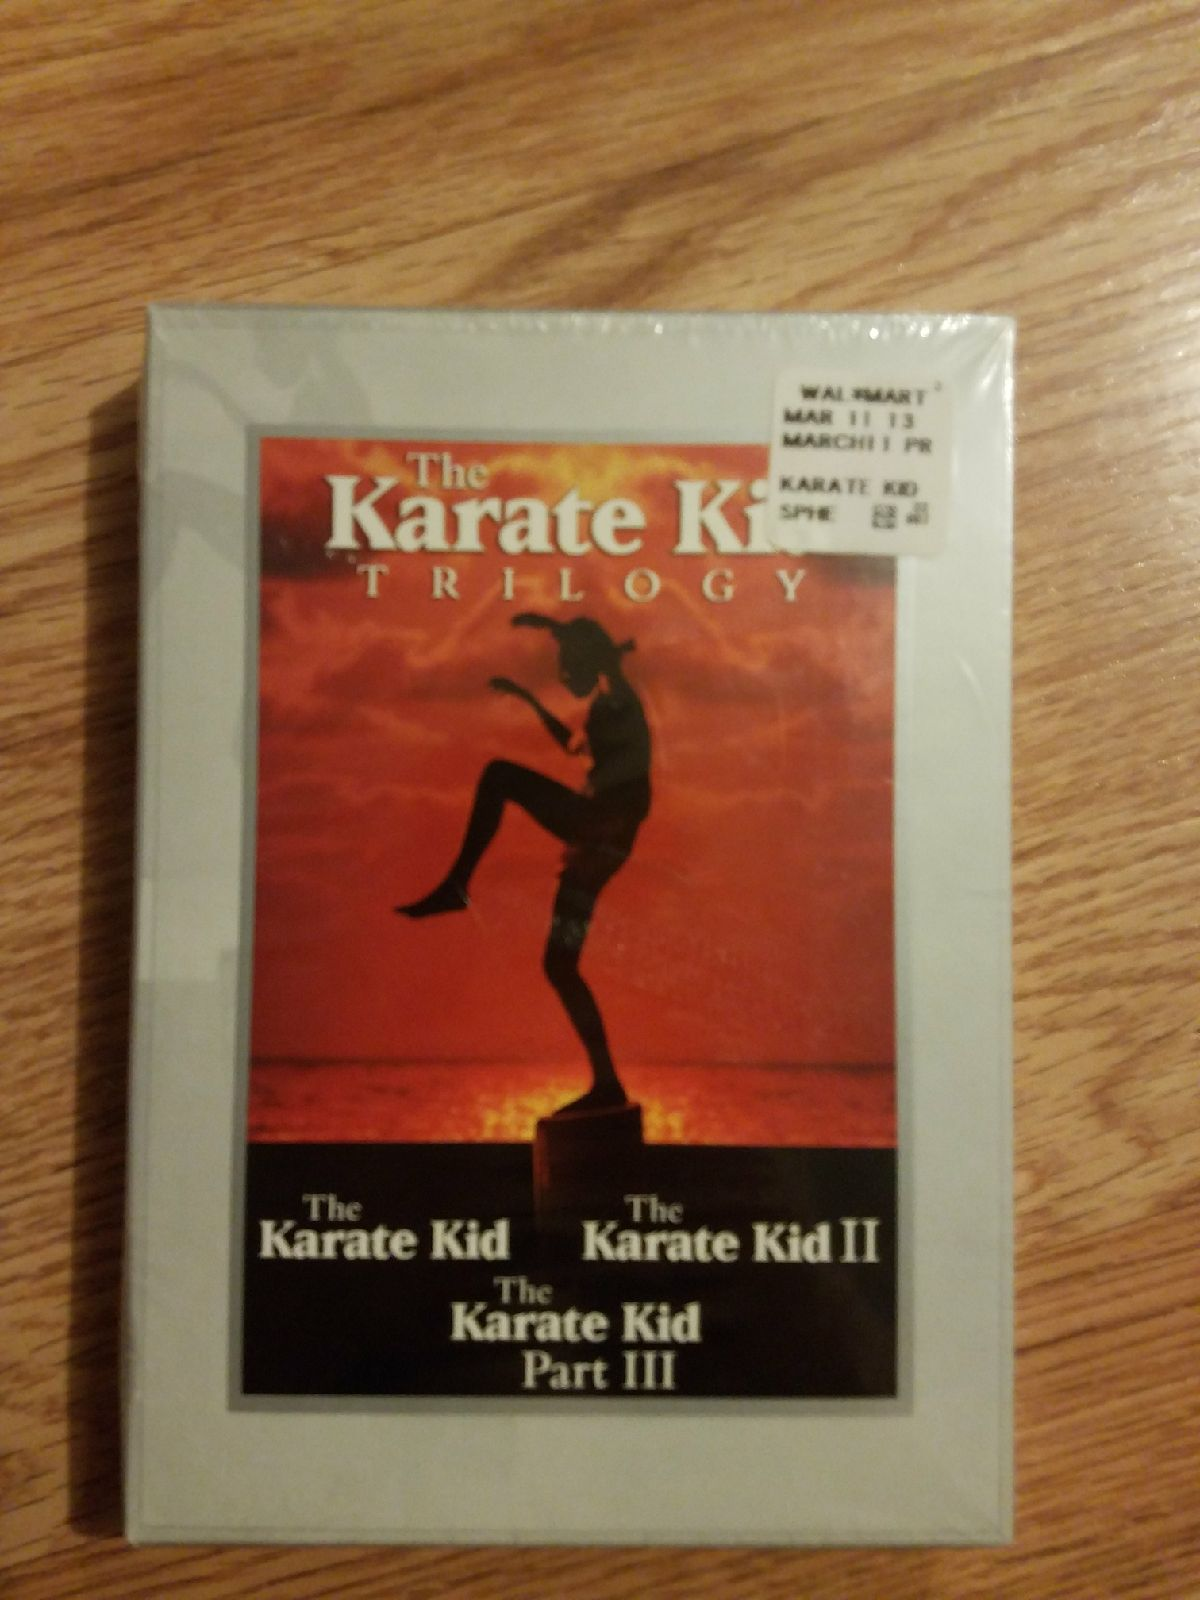 Karate kid trilogy